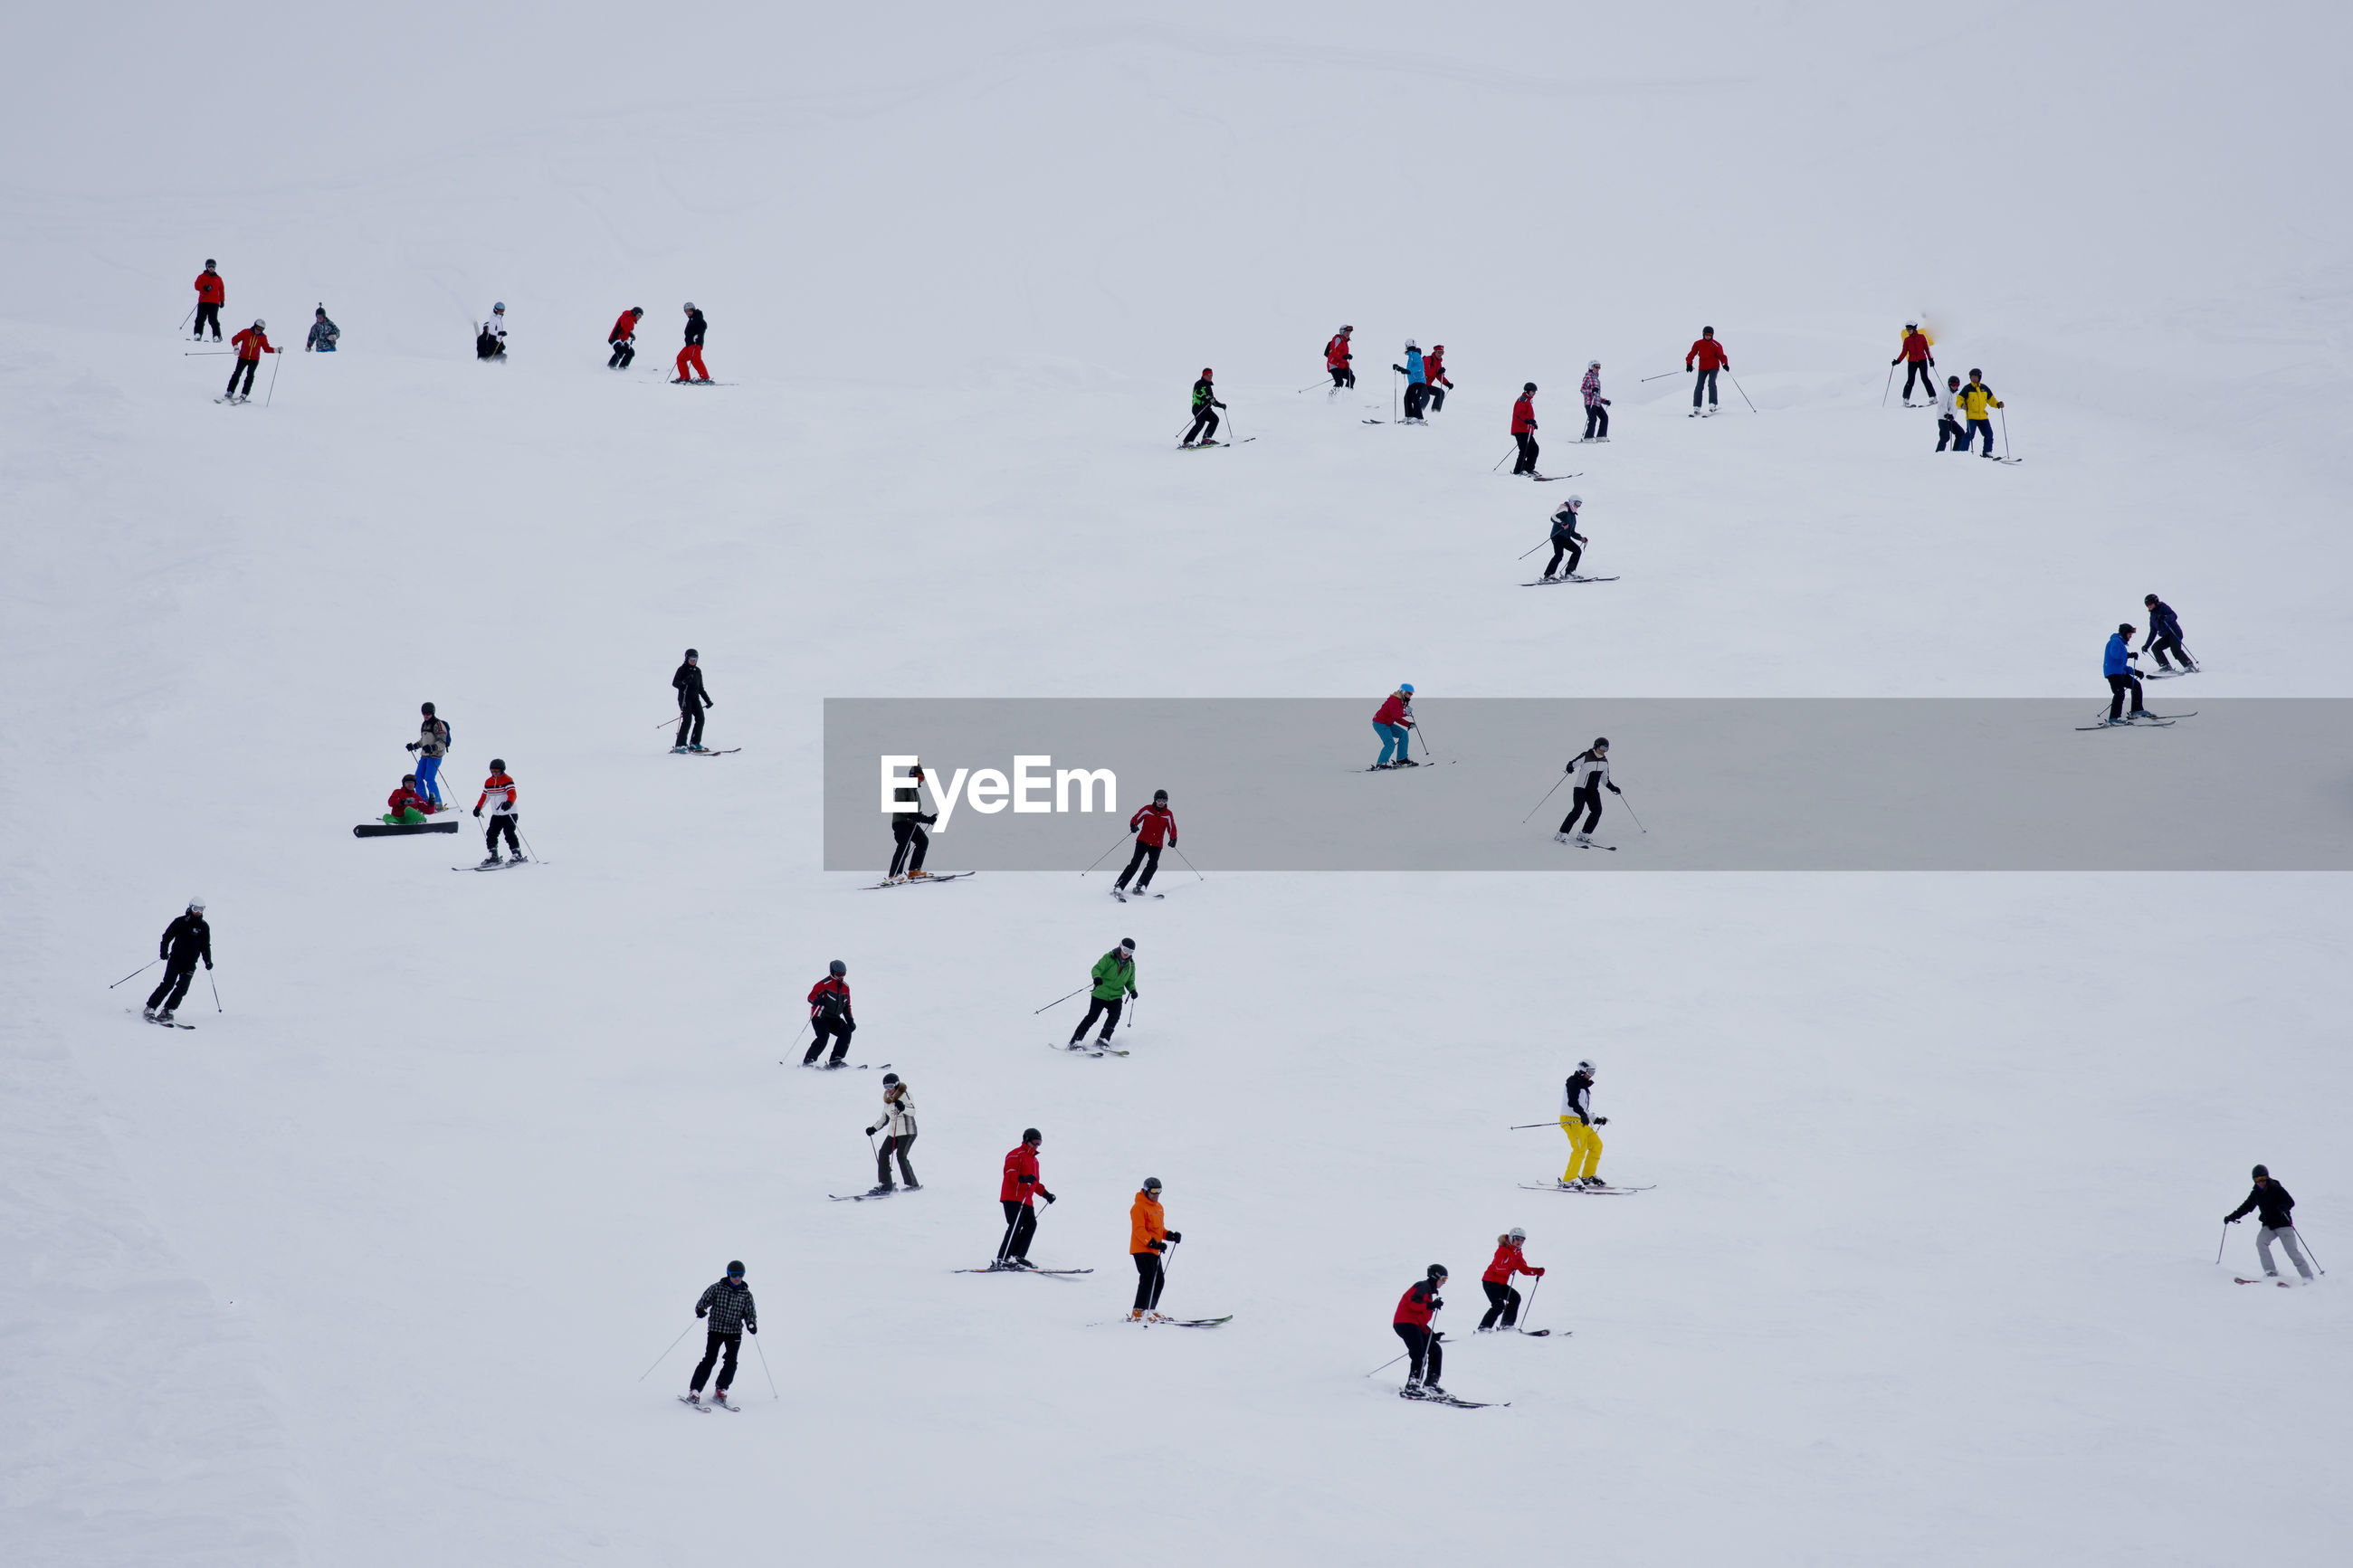 High angle view of people skiing on snow during winter